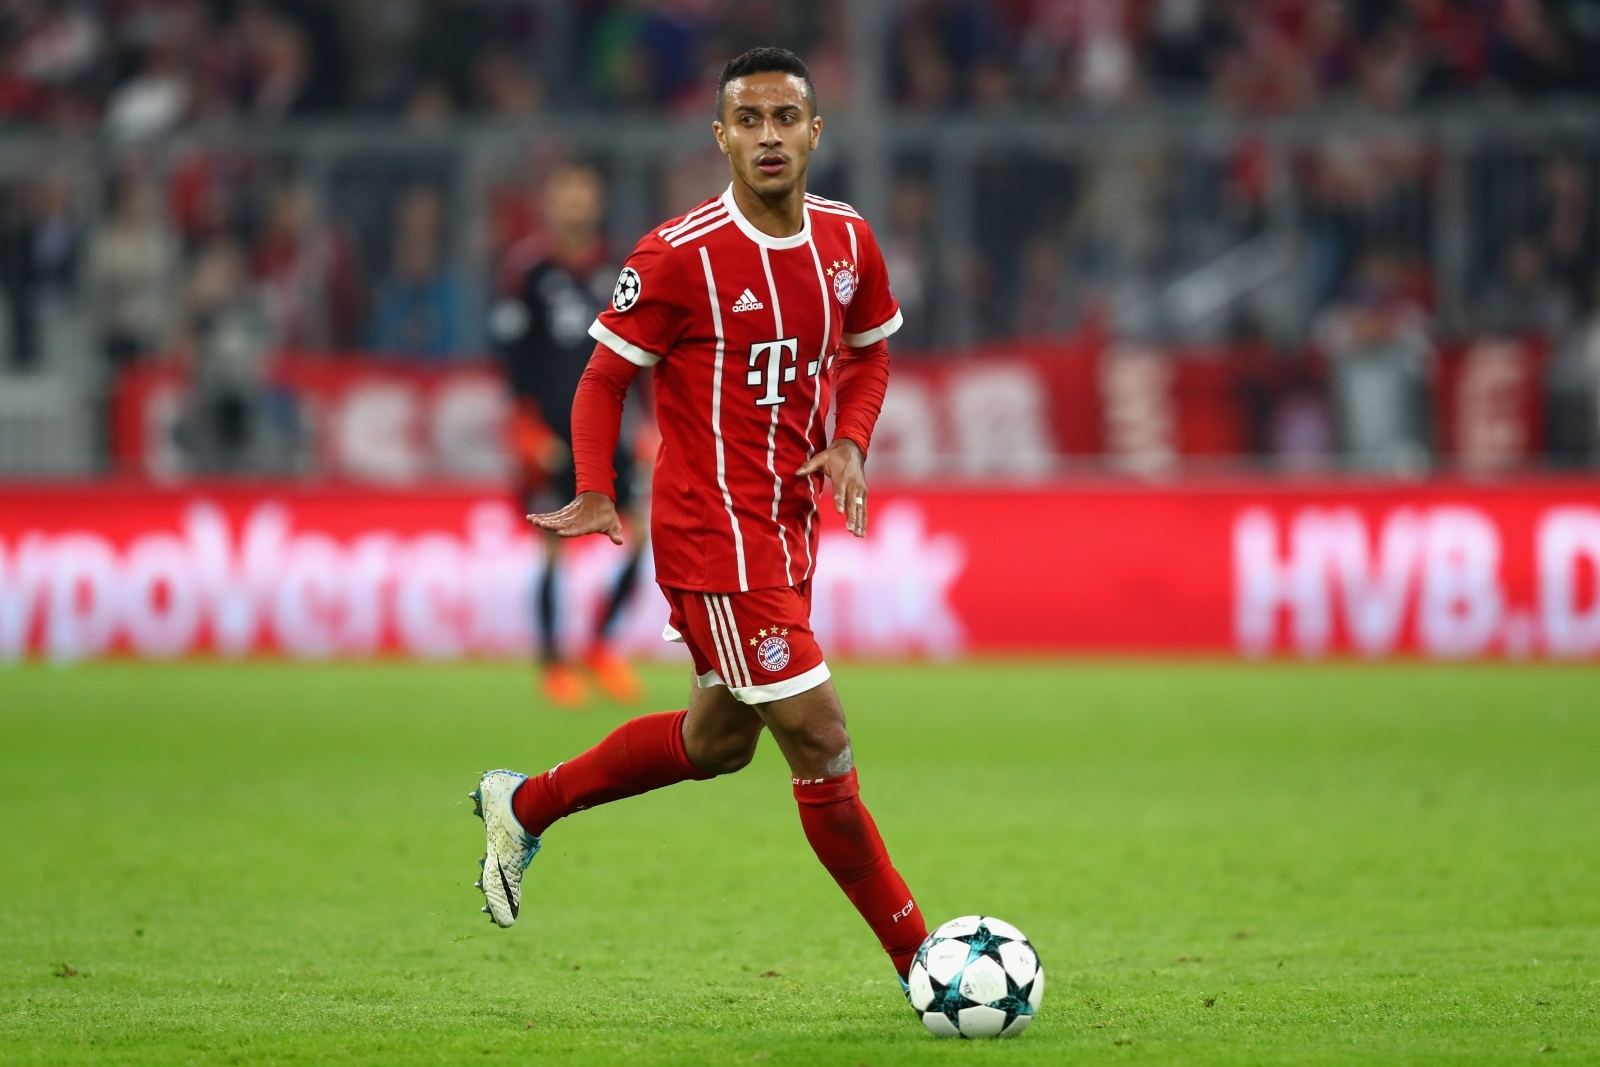 Barcelona news: Bayern Munich quote £77m for Thiago ...